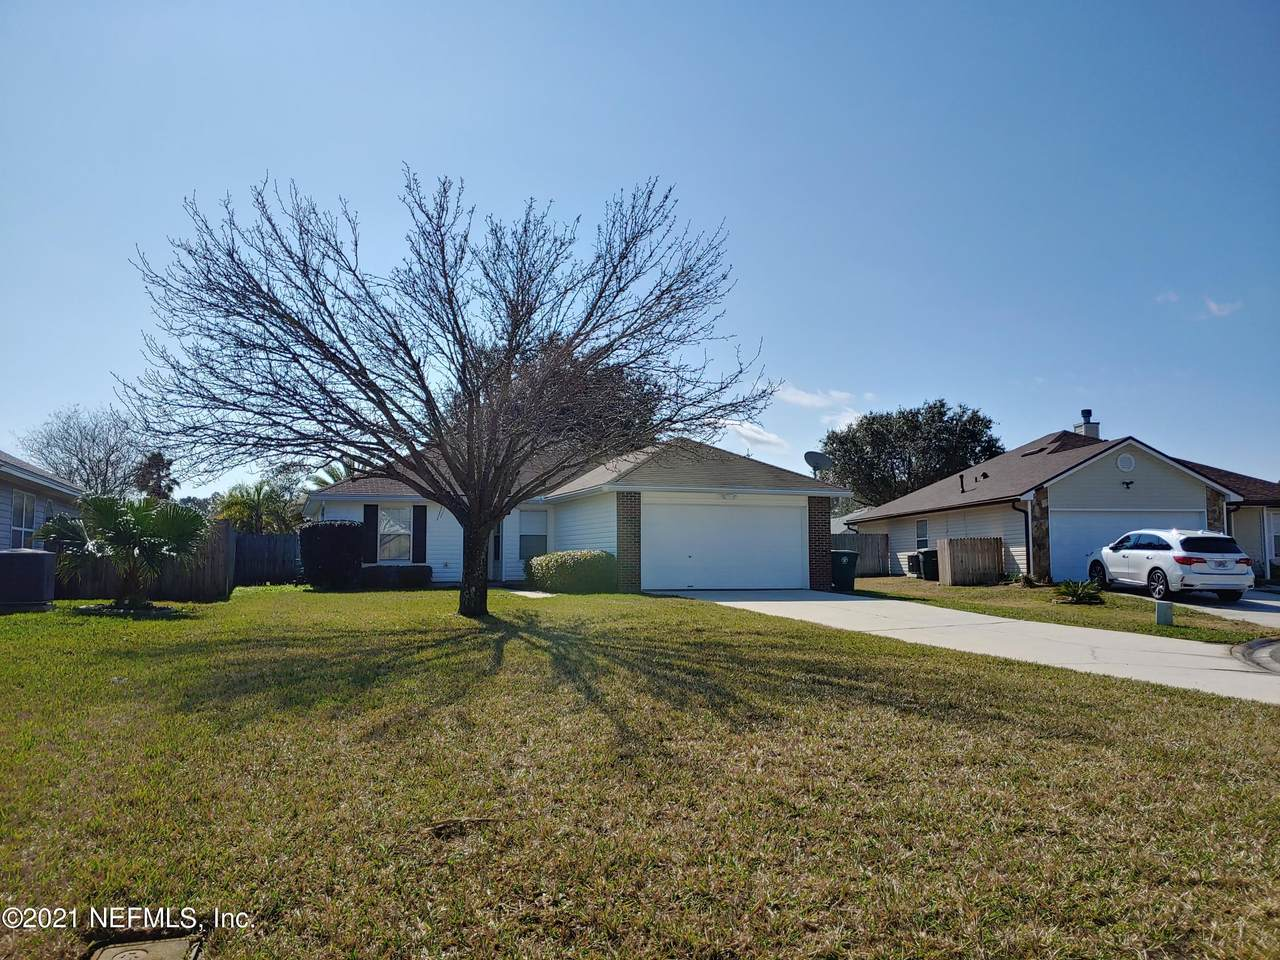 11048 Stutz Ct - Photo 1